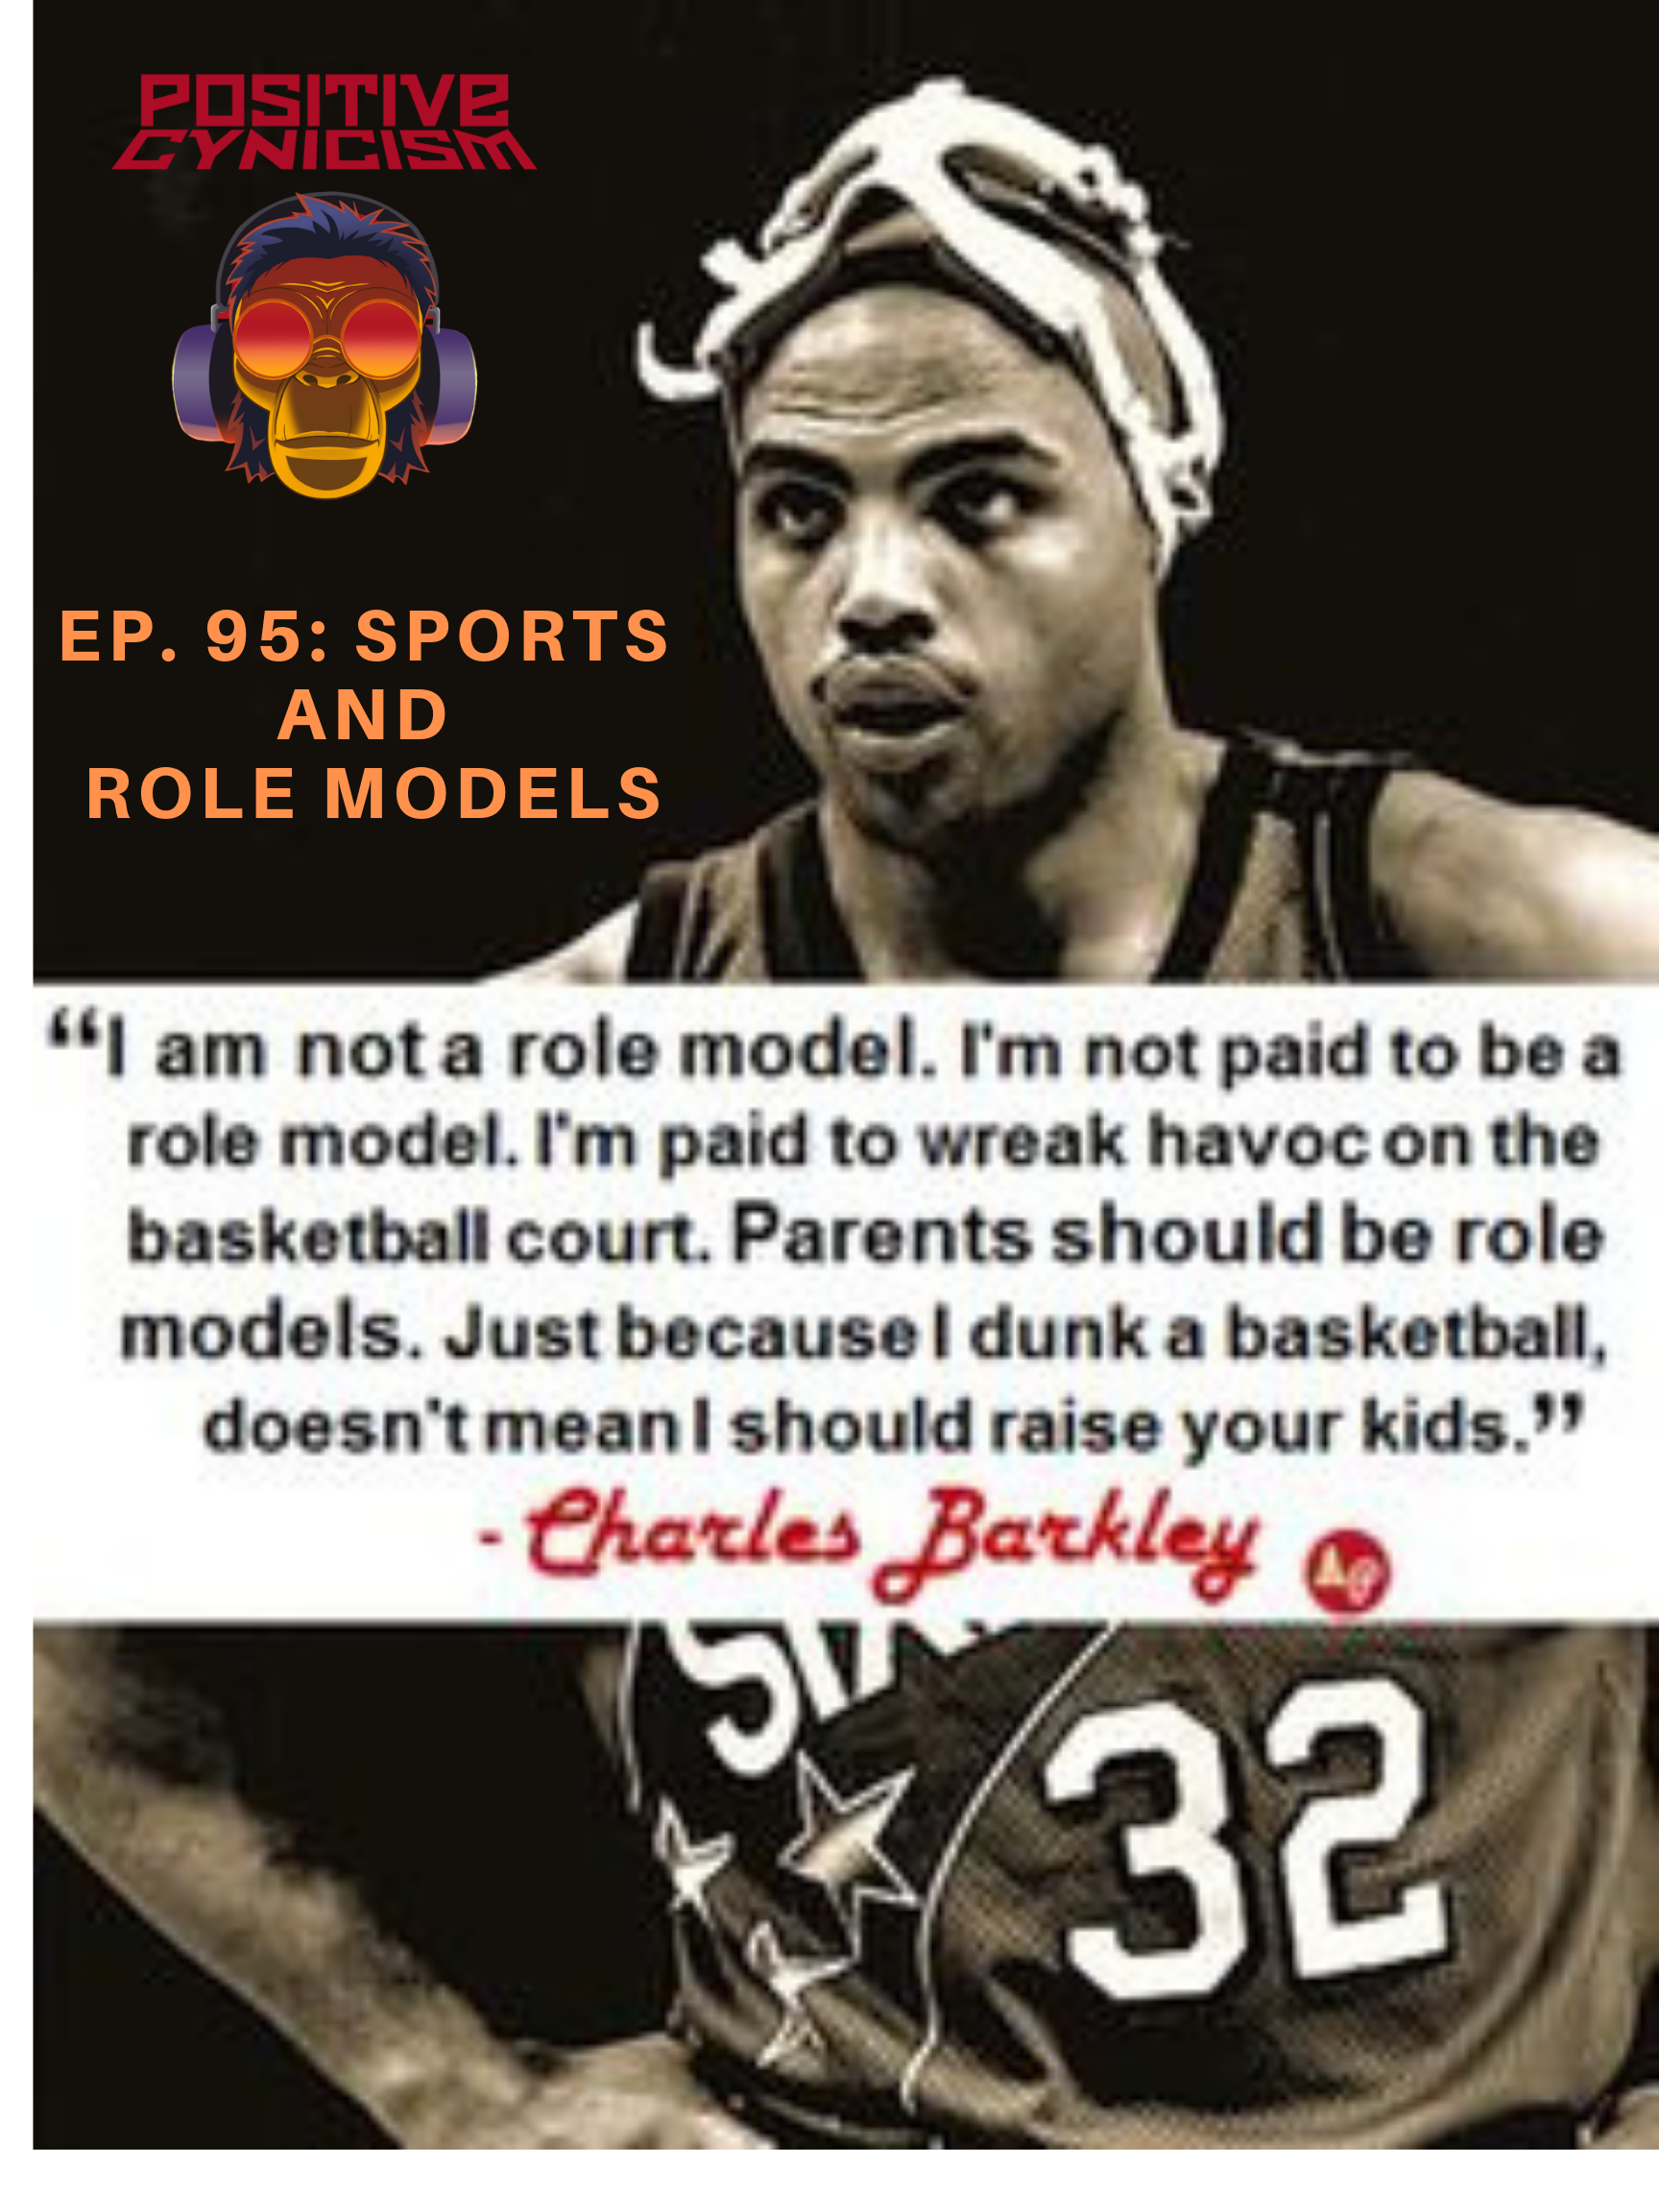 Positive Cynicism EP. 95: Sports and Role Models